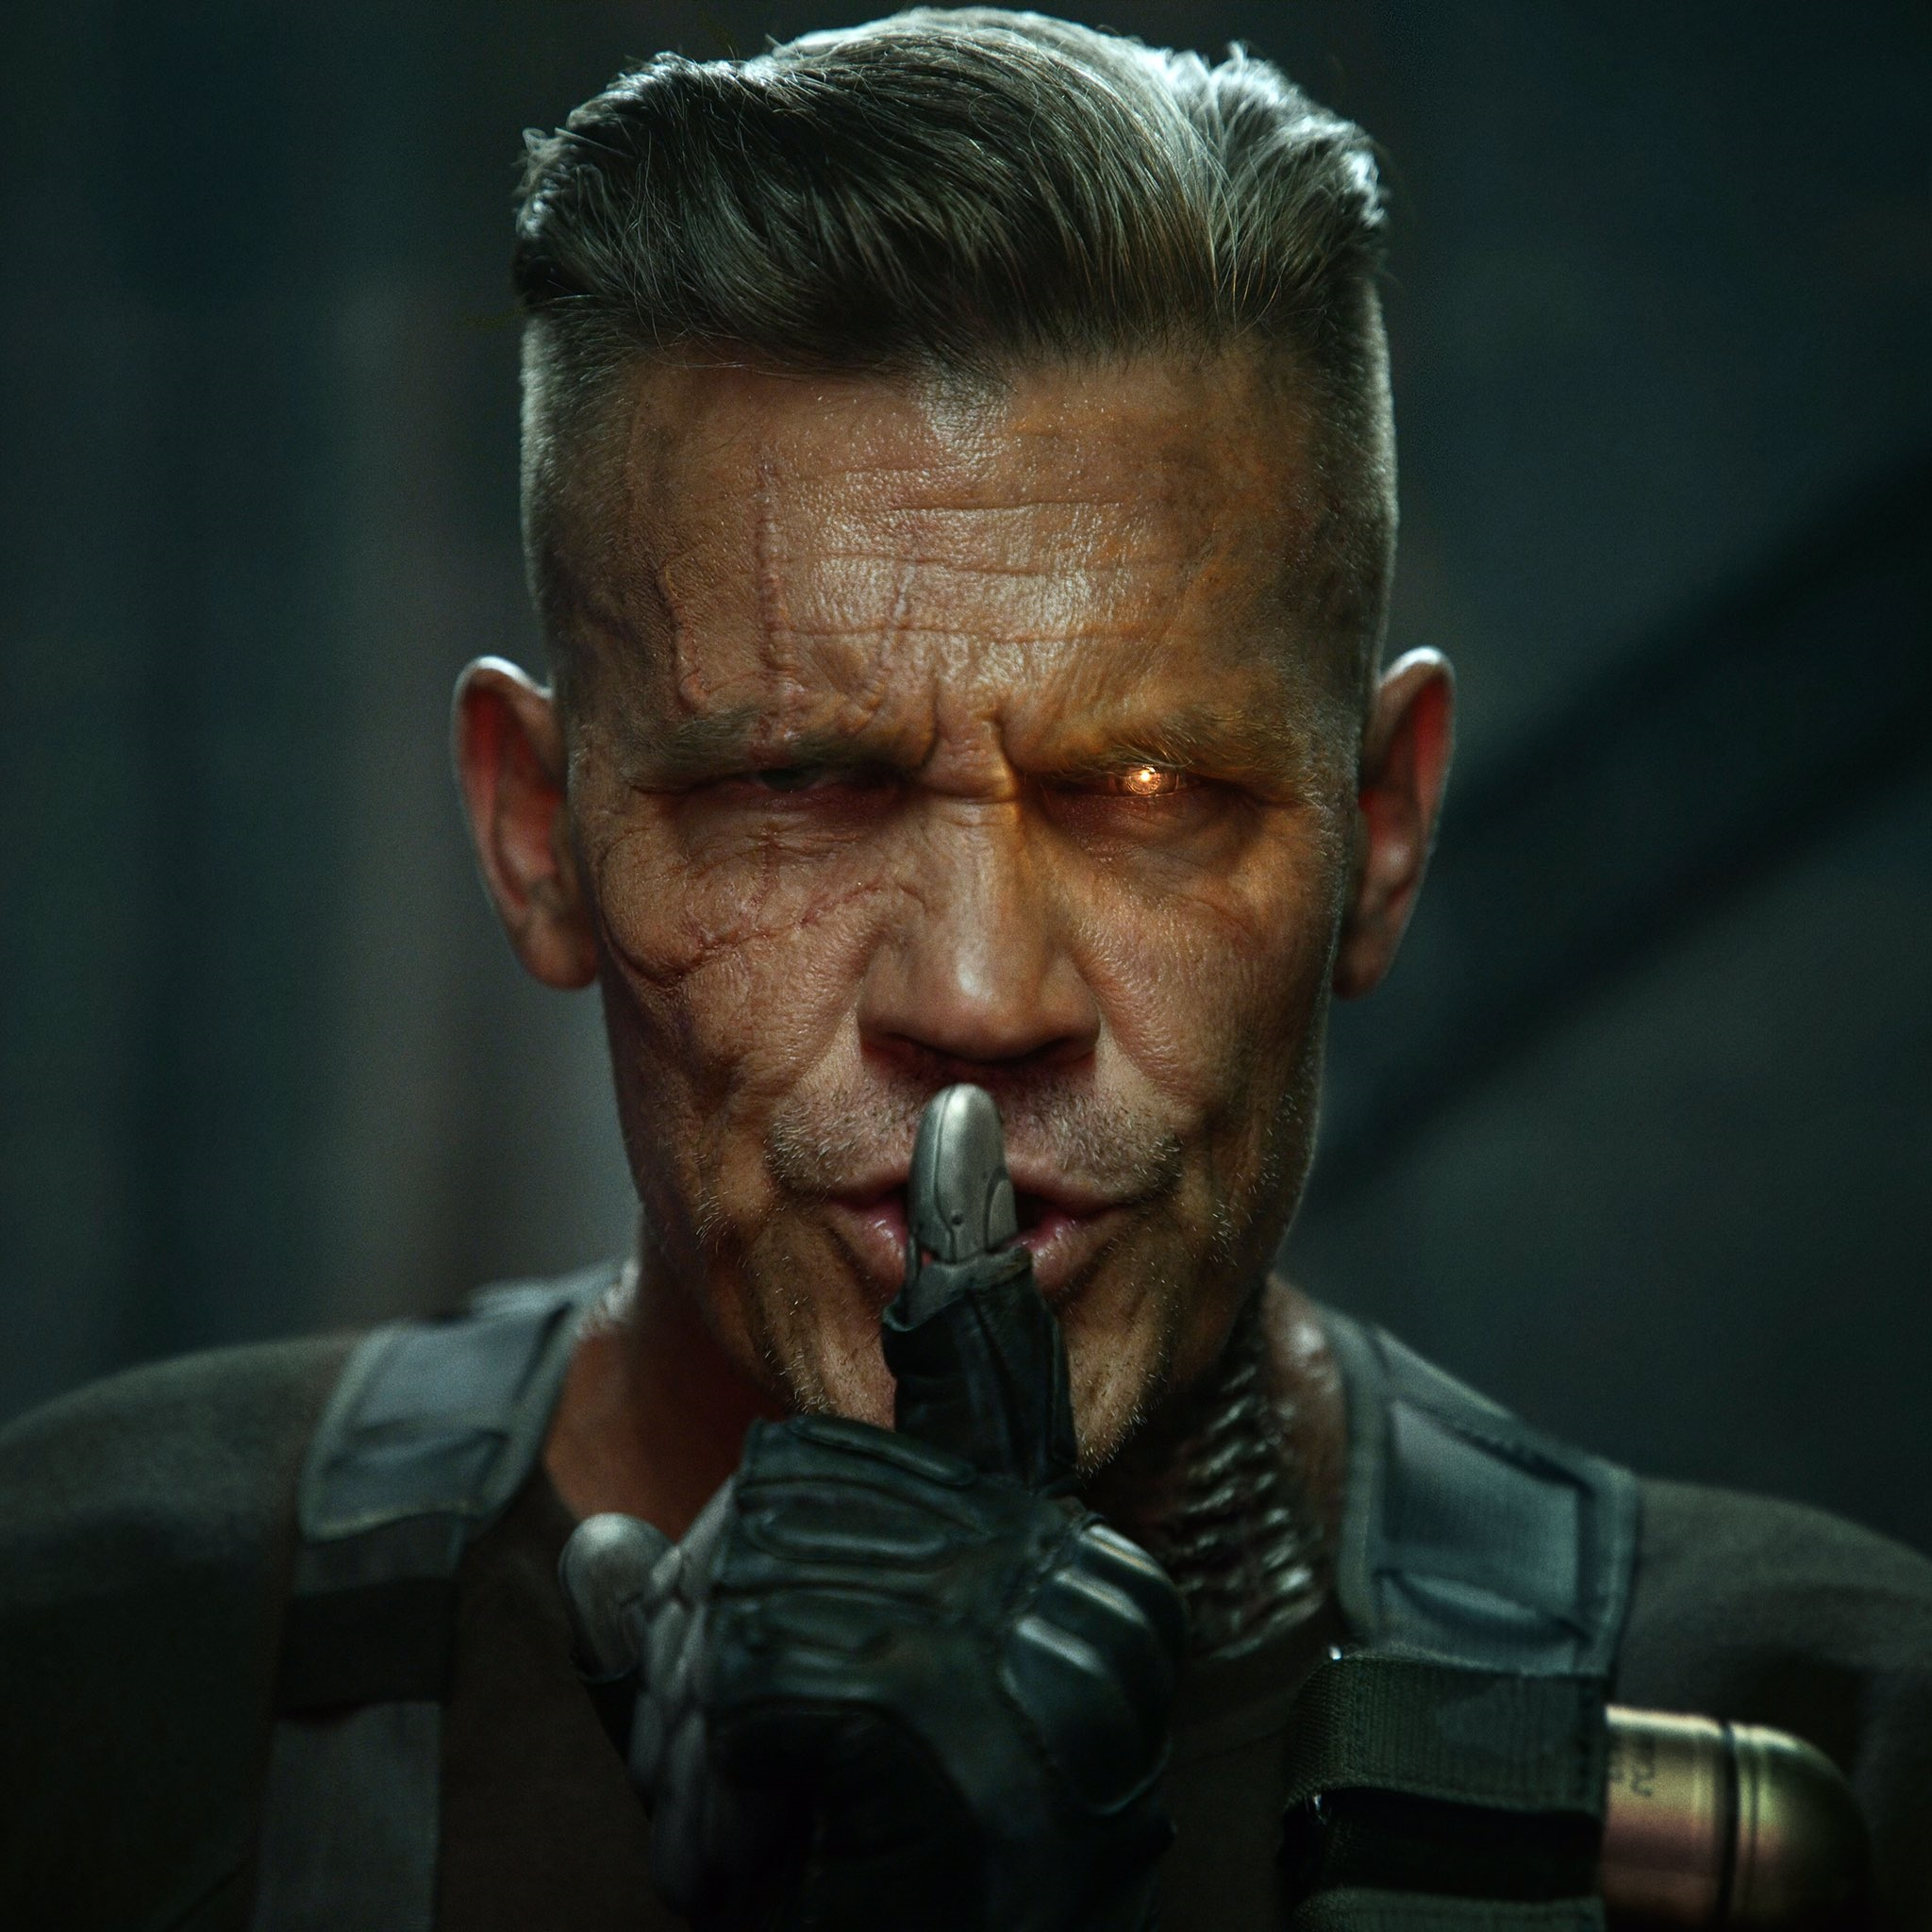 First look at Josh Brolin as Cable from Deadpool 2